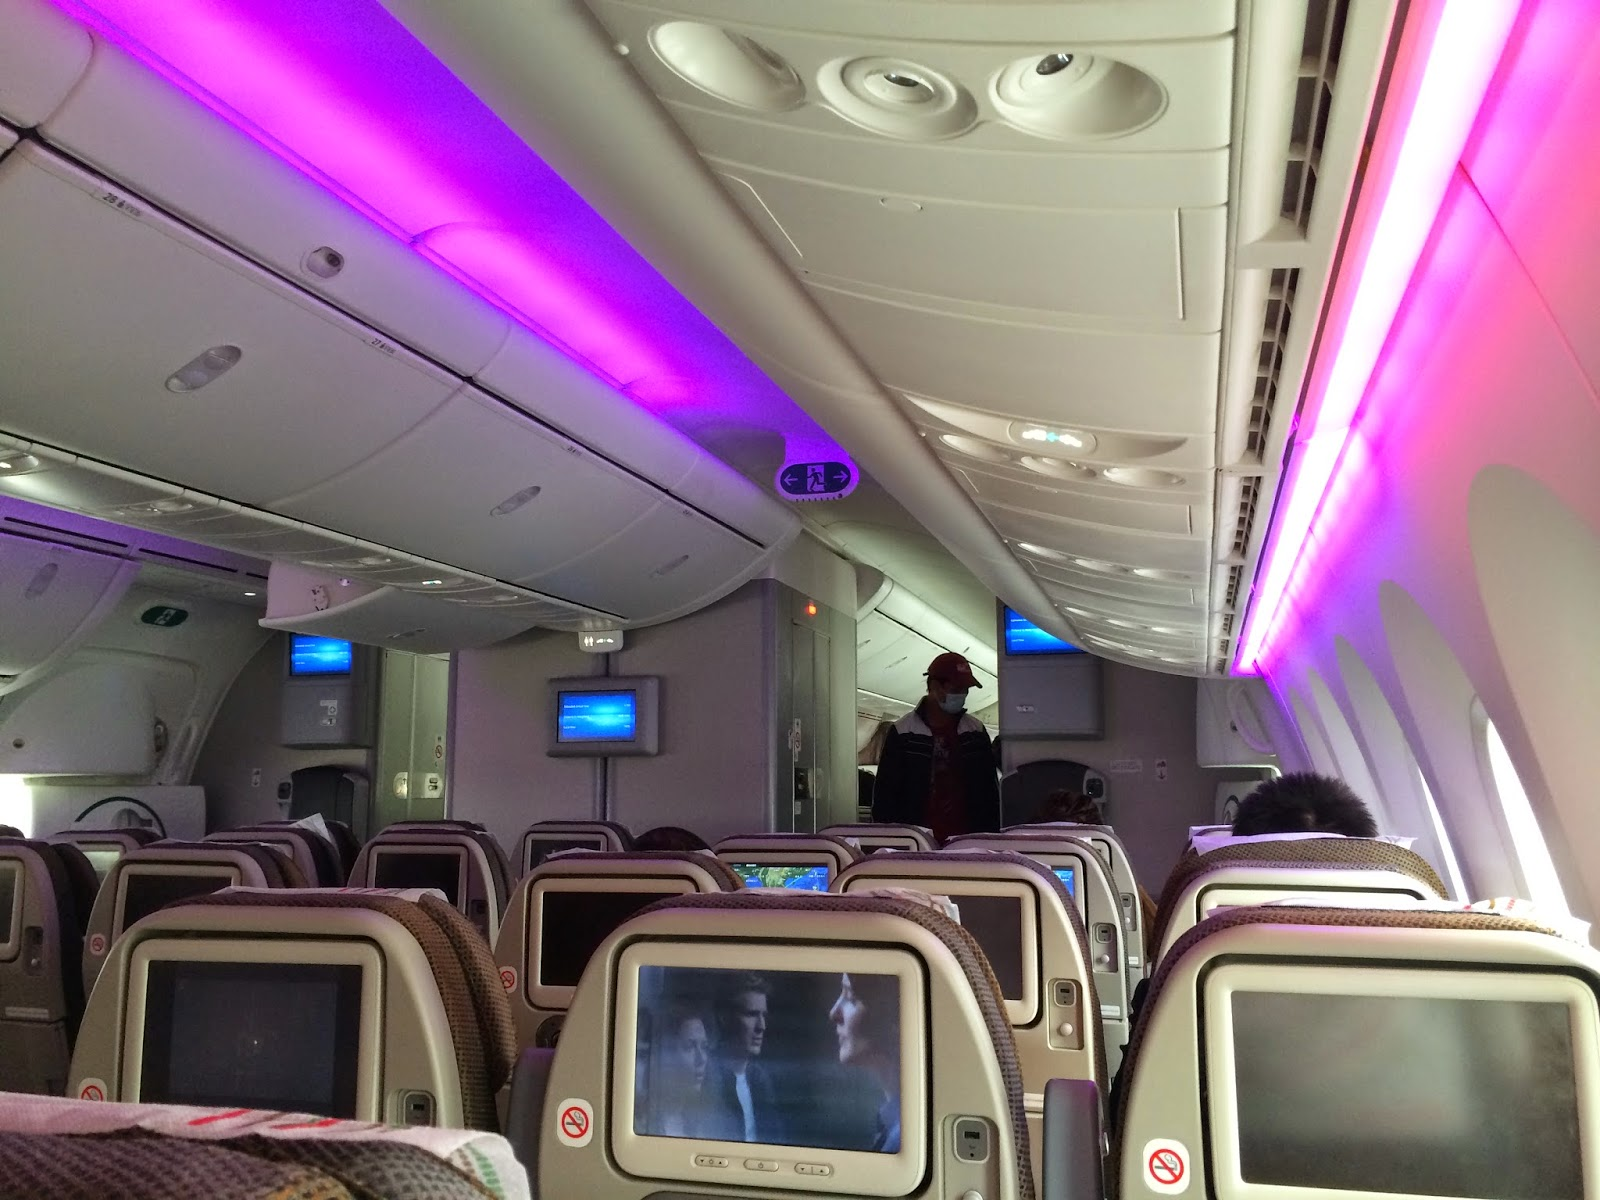 Boeing 787 interior coach viewing gallery - Once You Fly On The 787 You Won T Want To Fly On Other Similar Size Type Its So Comfortable And Cozy That S Why This Is Now My Favourite Aircraft Along